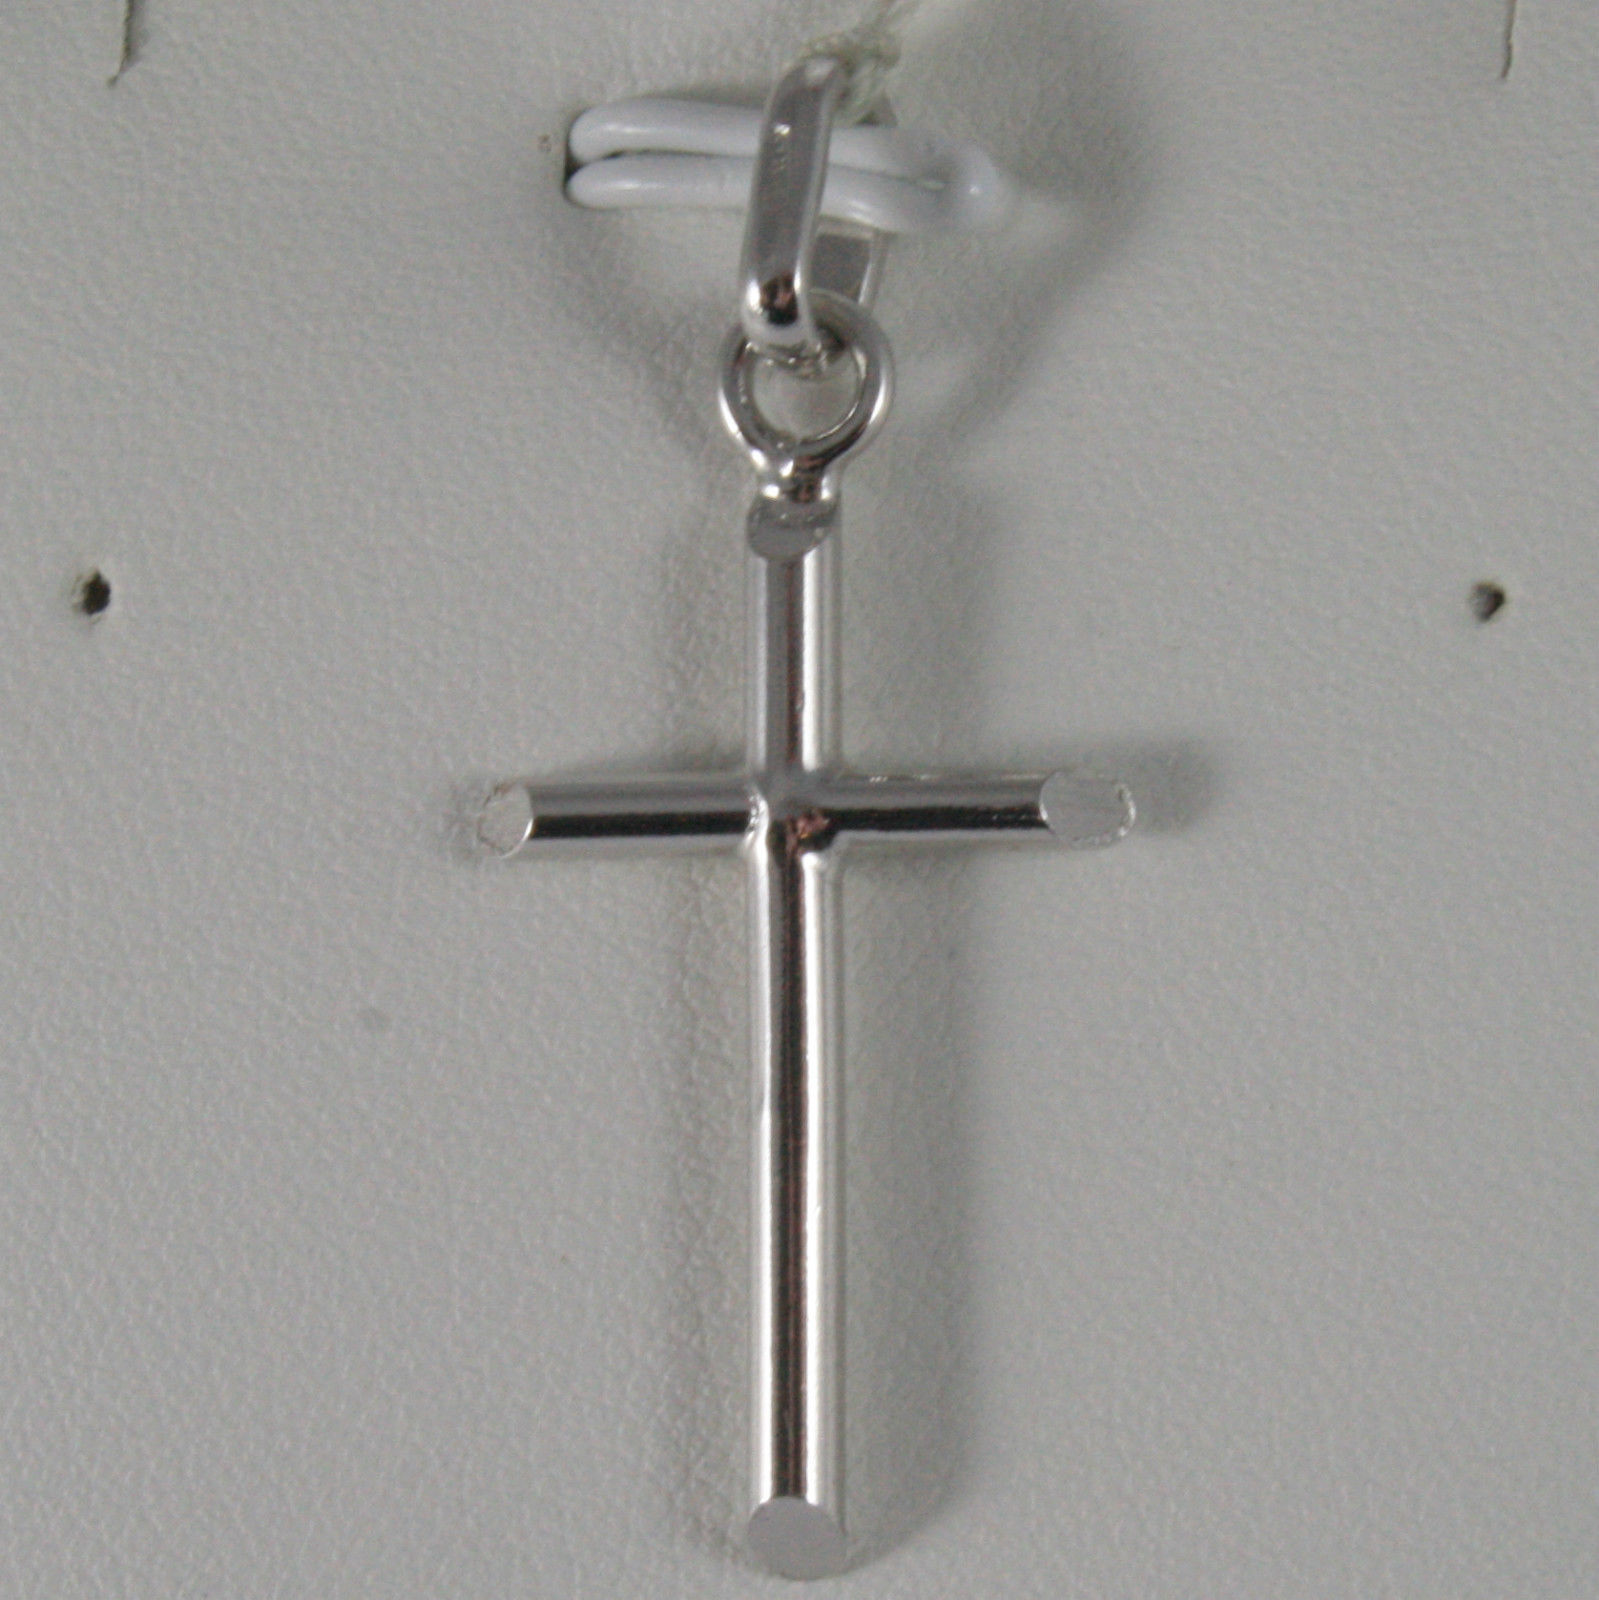 SOLID 18K WHITE GOLD CROSS, TUBE, SHINY 1.46 INCHES, MADE IN ITALY